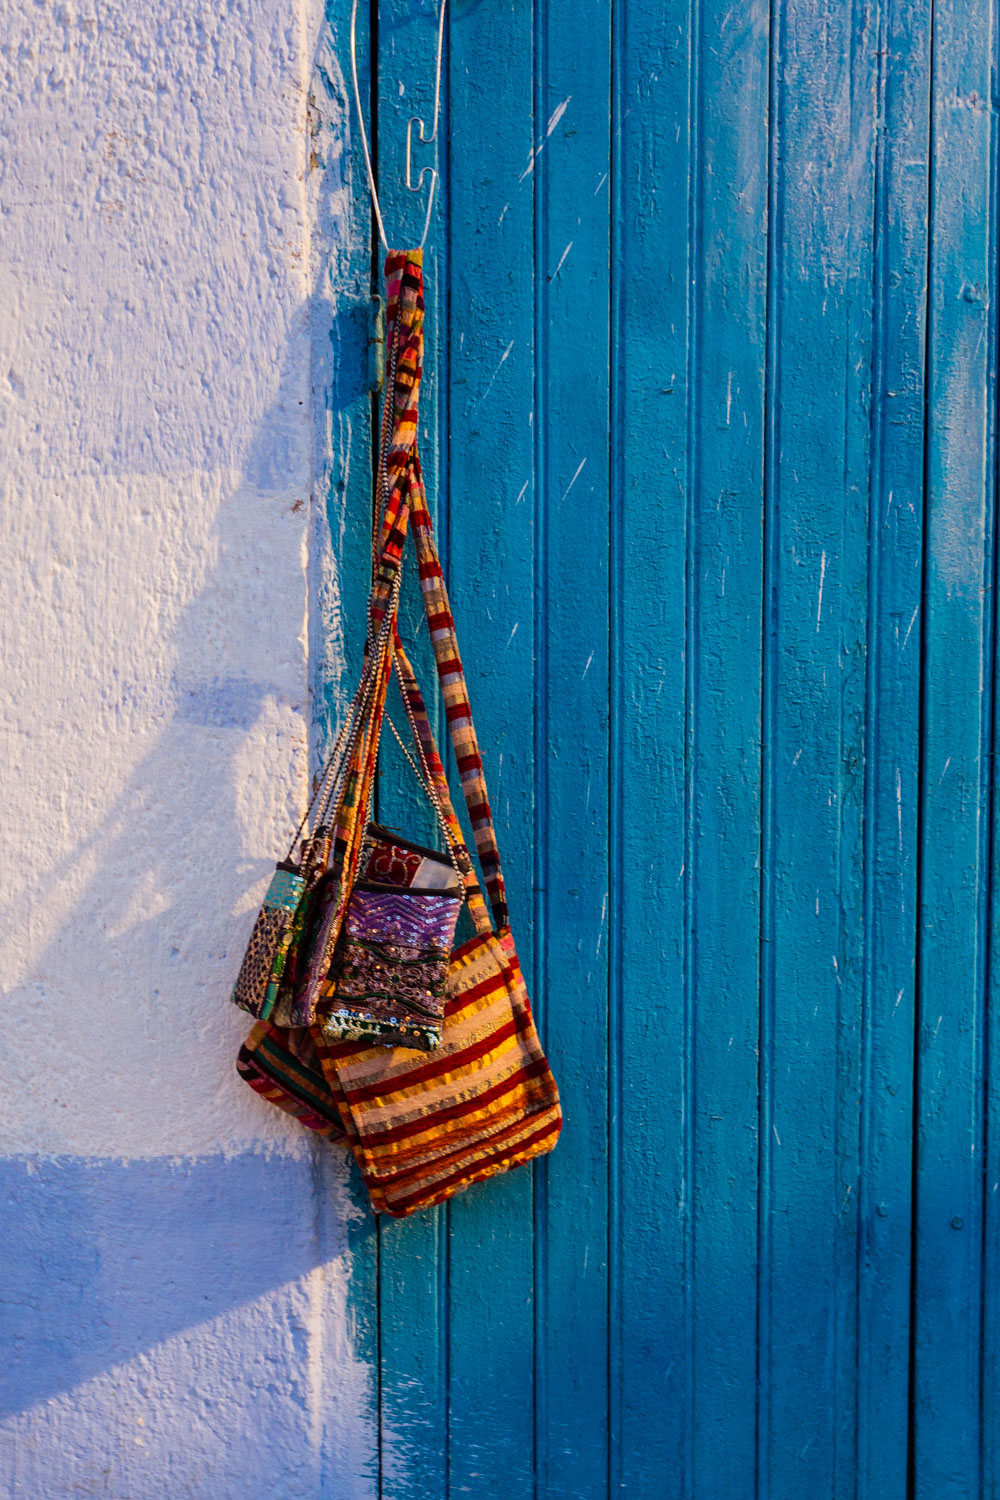 Hanging bags, Morocco